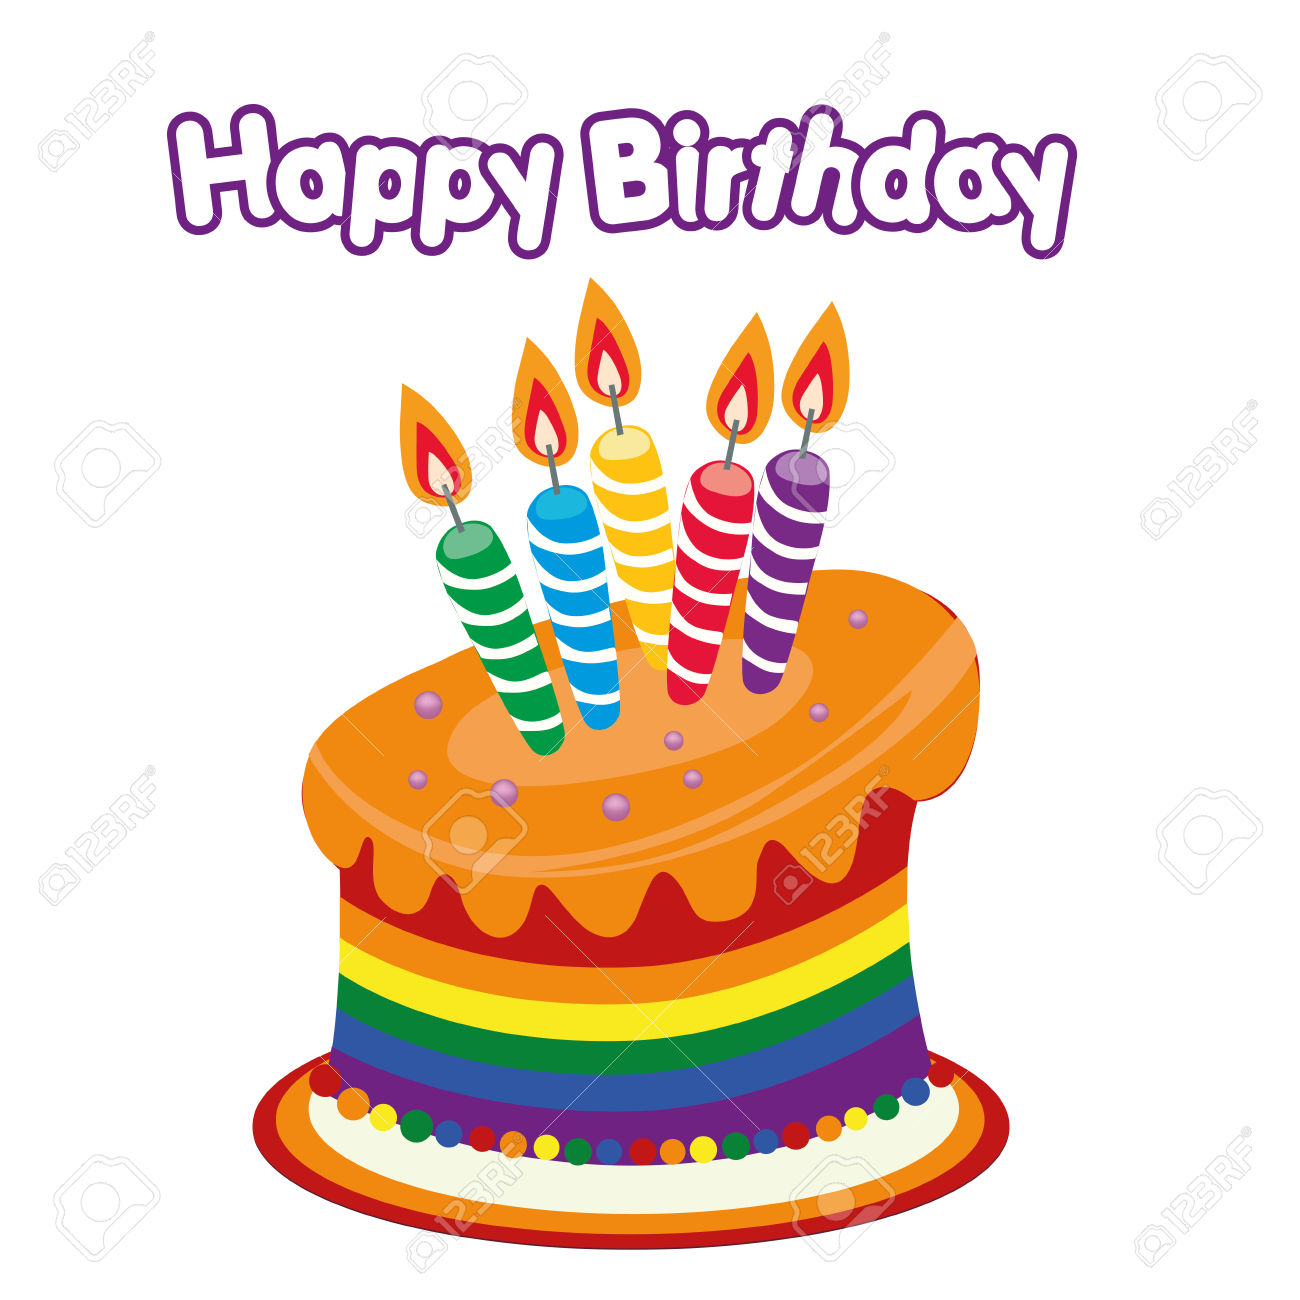 1300x1300 Clipart happy birthday cake